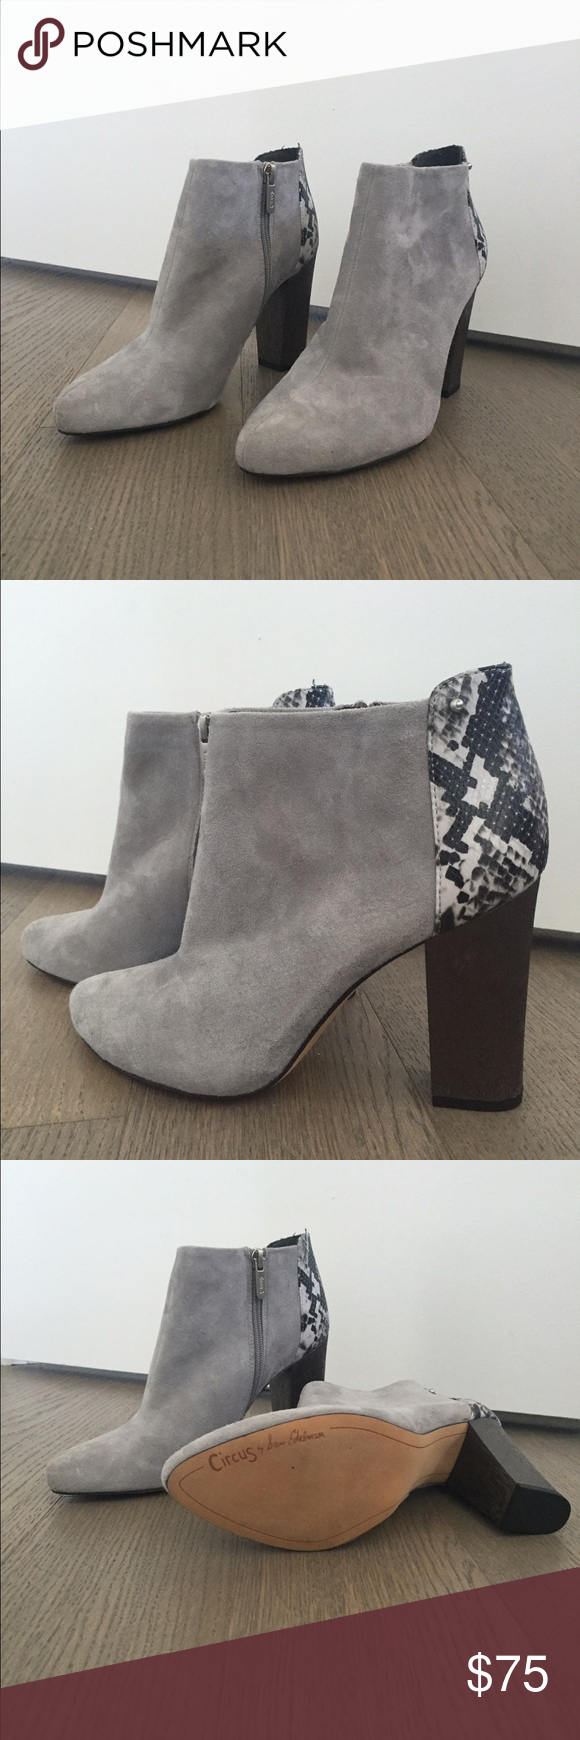 Circus by Sam Edelman gray booties  ! BRAND NEW gray suede boots. Size 8. Goes with just about any piece of clothing. Sam Edelman Shoes Ankle Boots & Booties